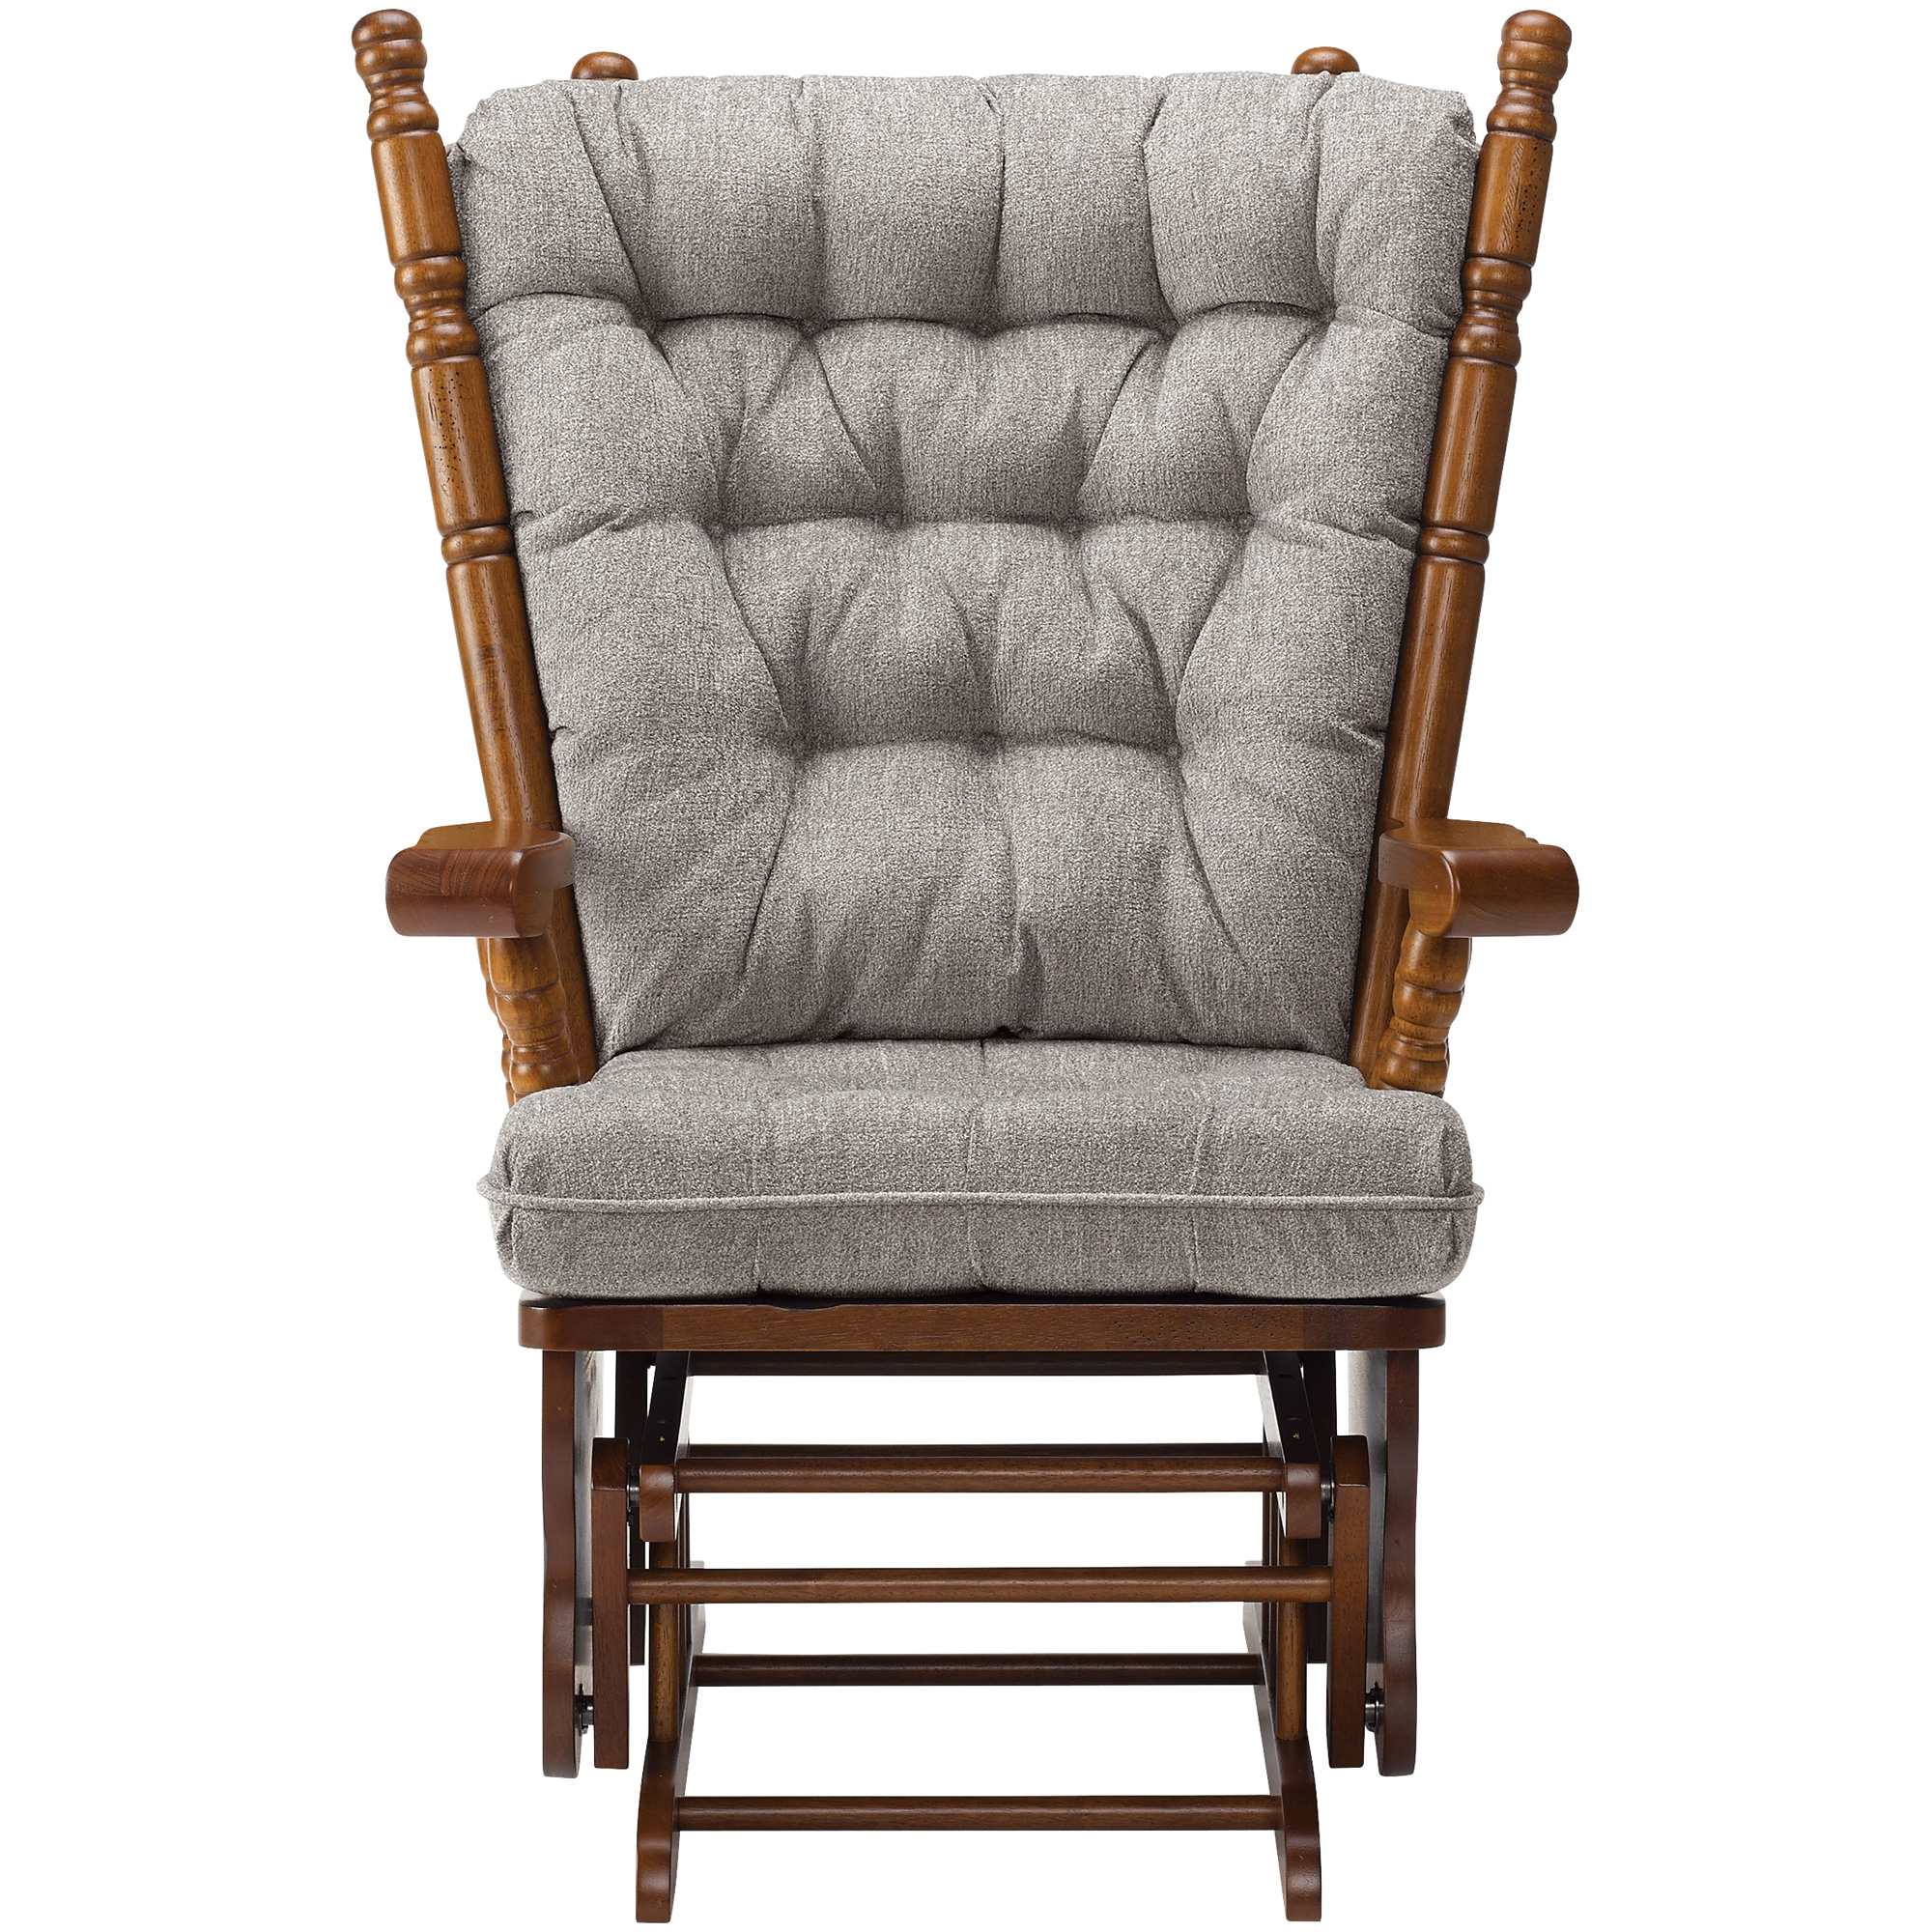 Best Home Furnishings | Giselle Spruce Glider Chair